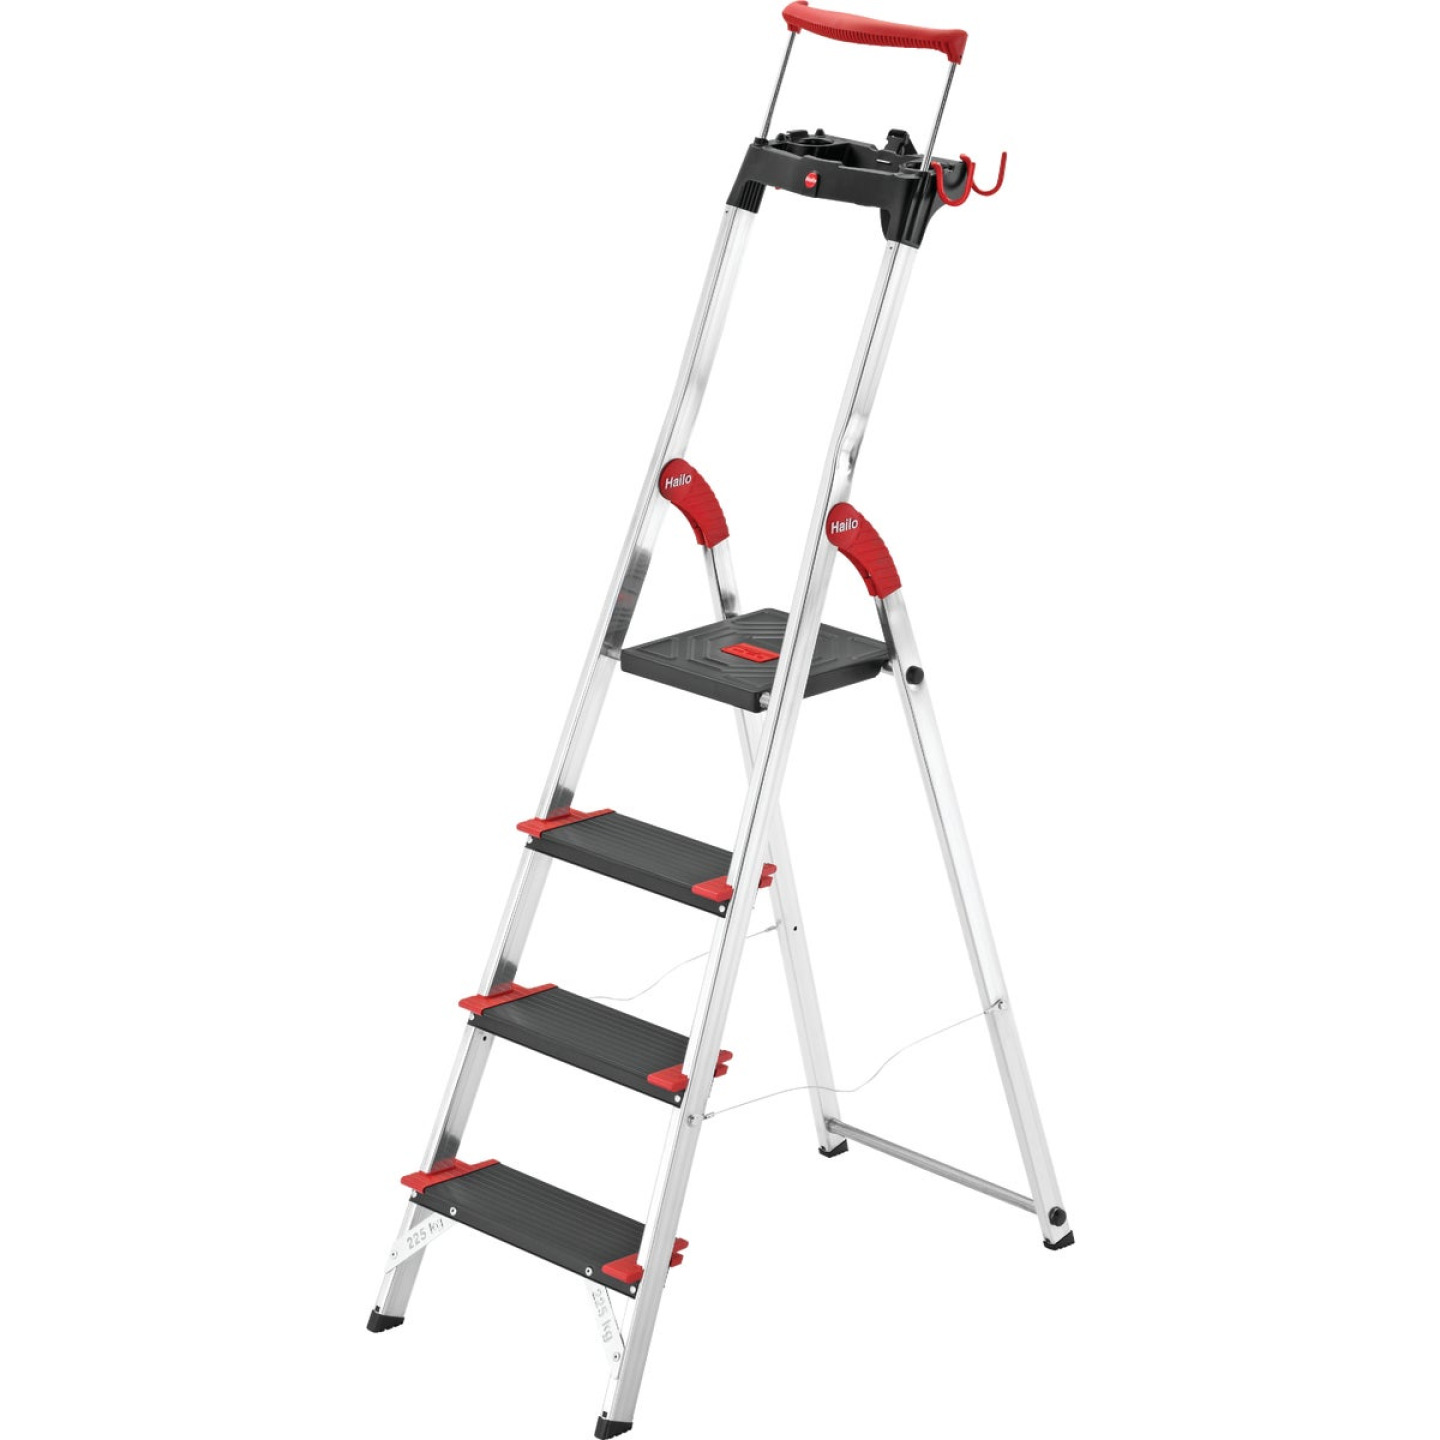 Hailo L100 4-Step Ladder with Adjustible Handrail & 330 Lb. Capacity Image 1